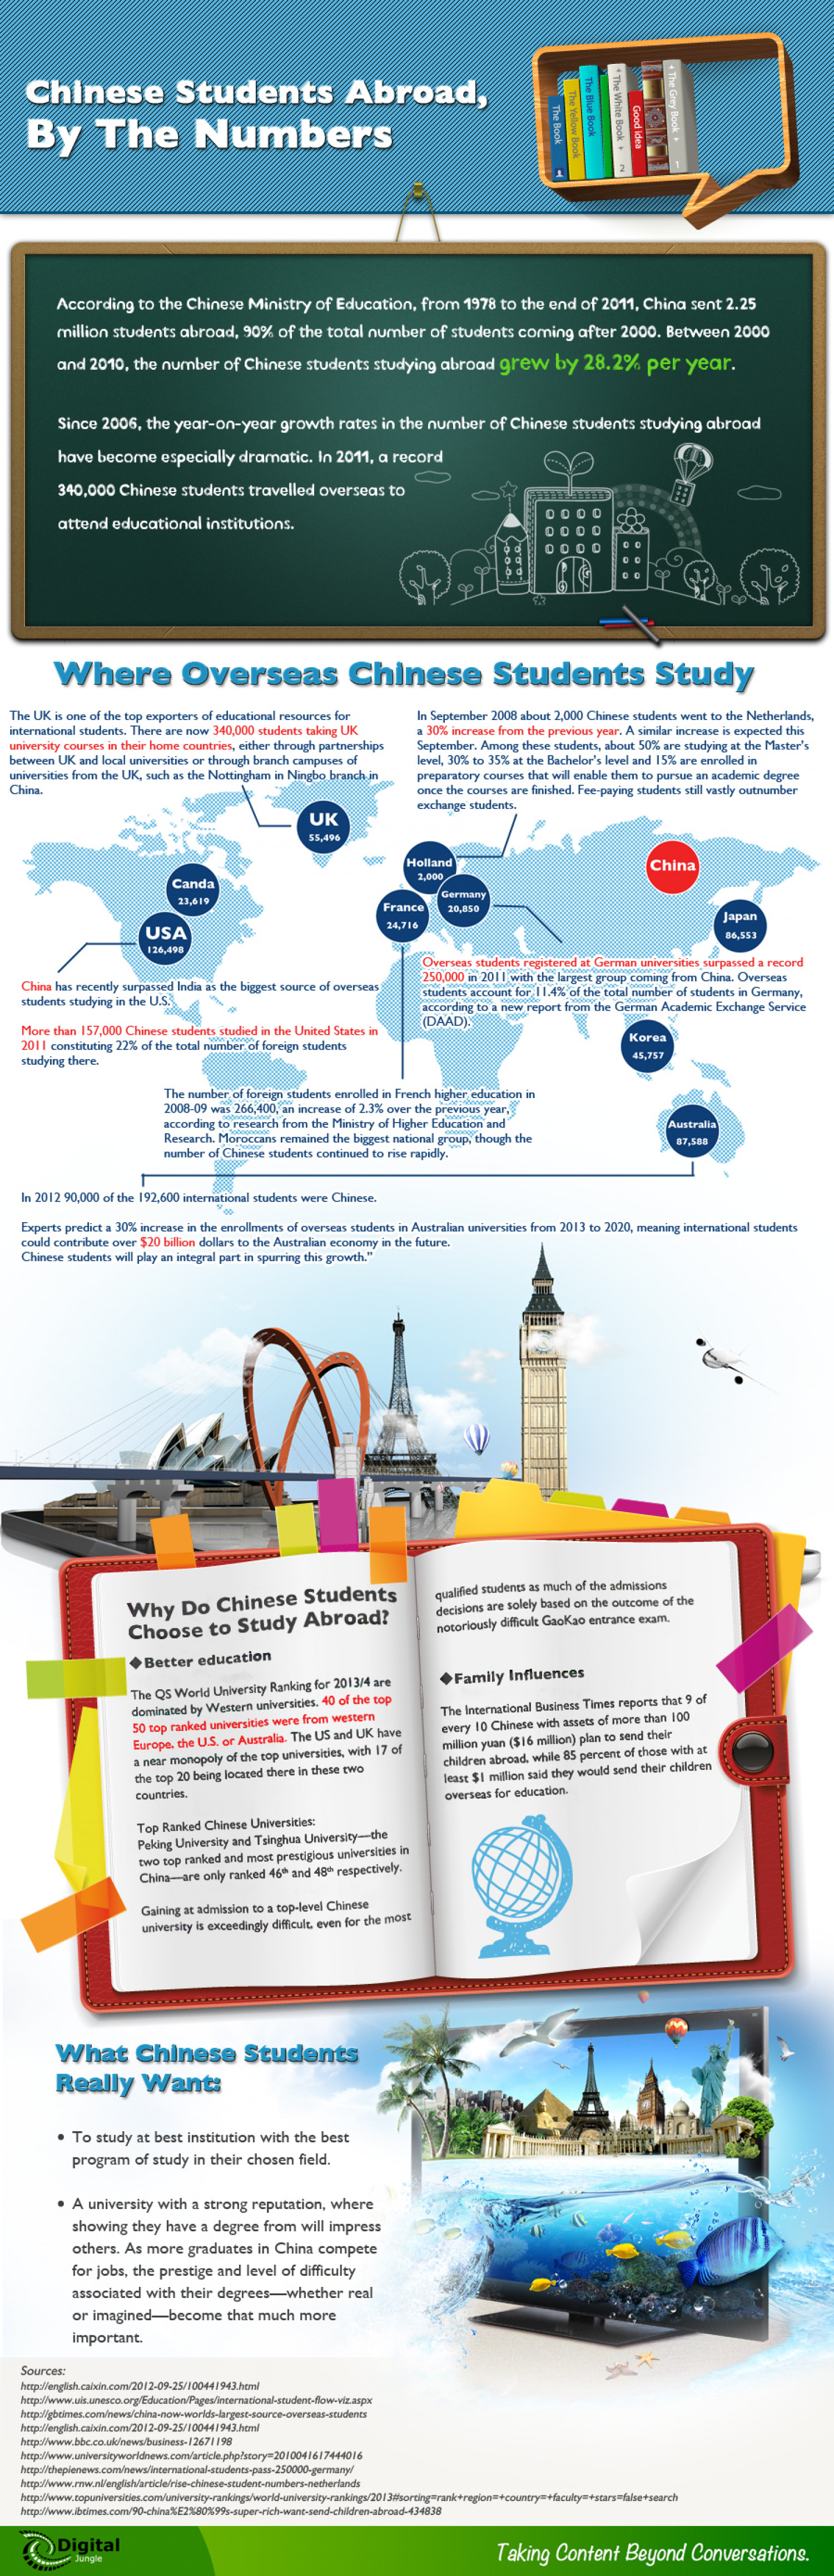 Why Do Chinese Travel Abroard for Higher Education? Infographic